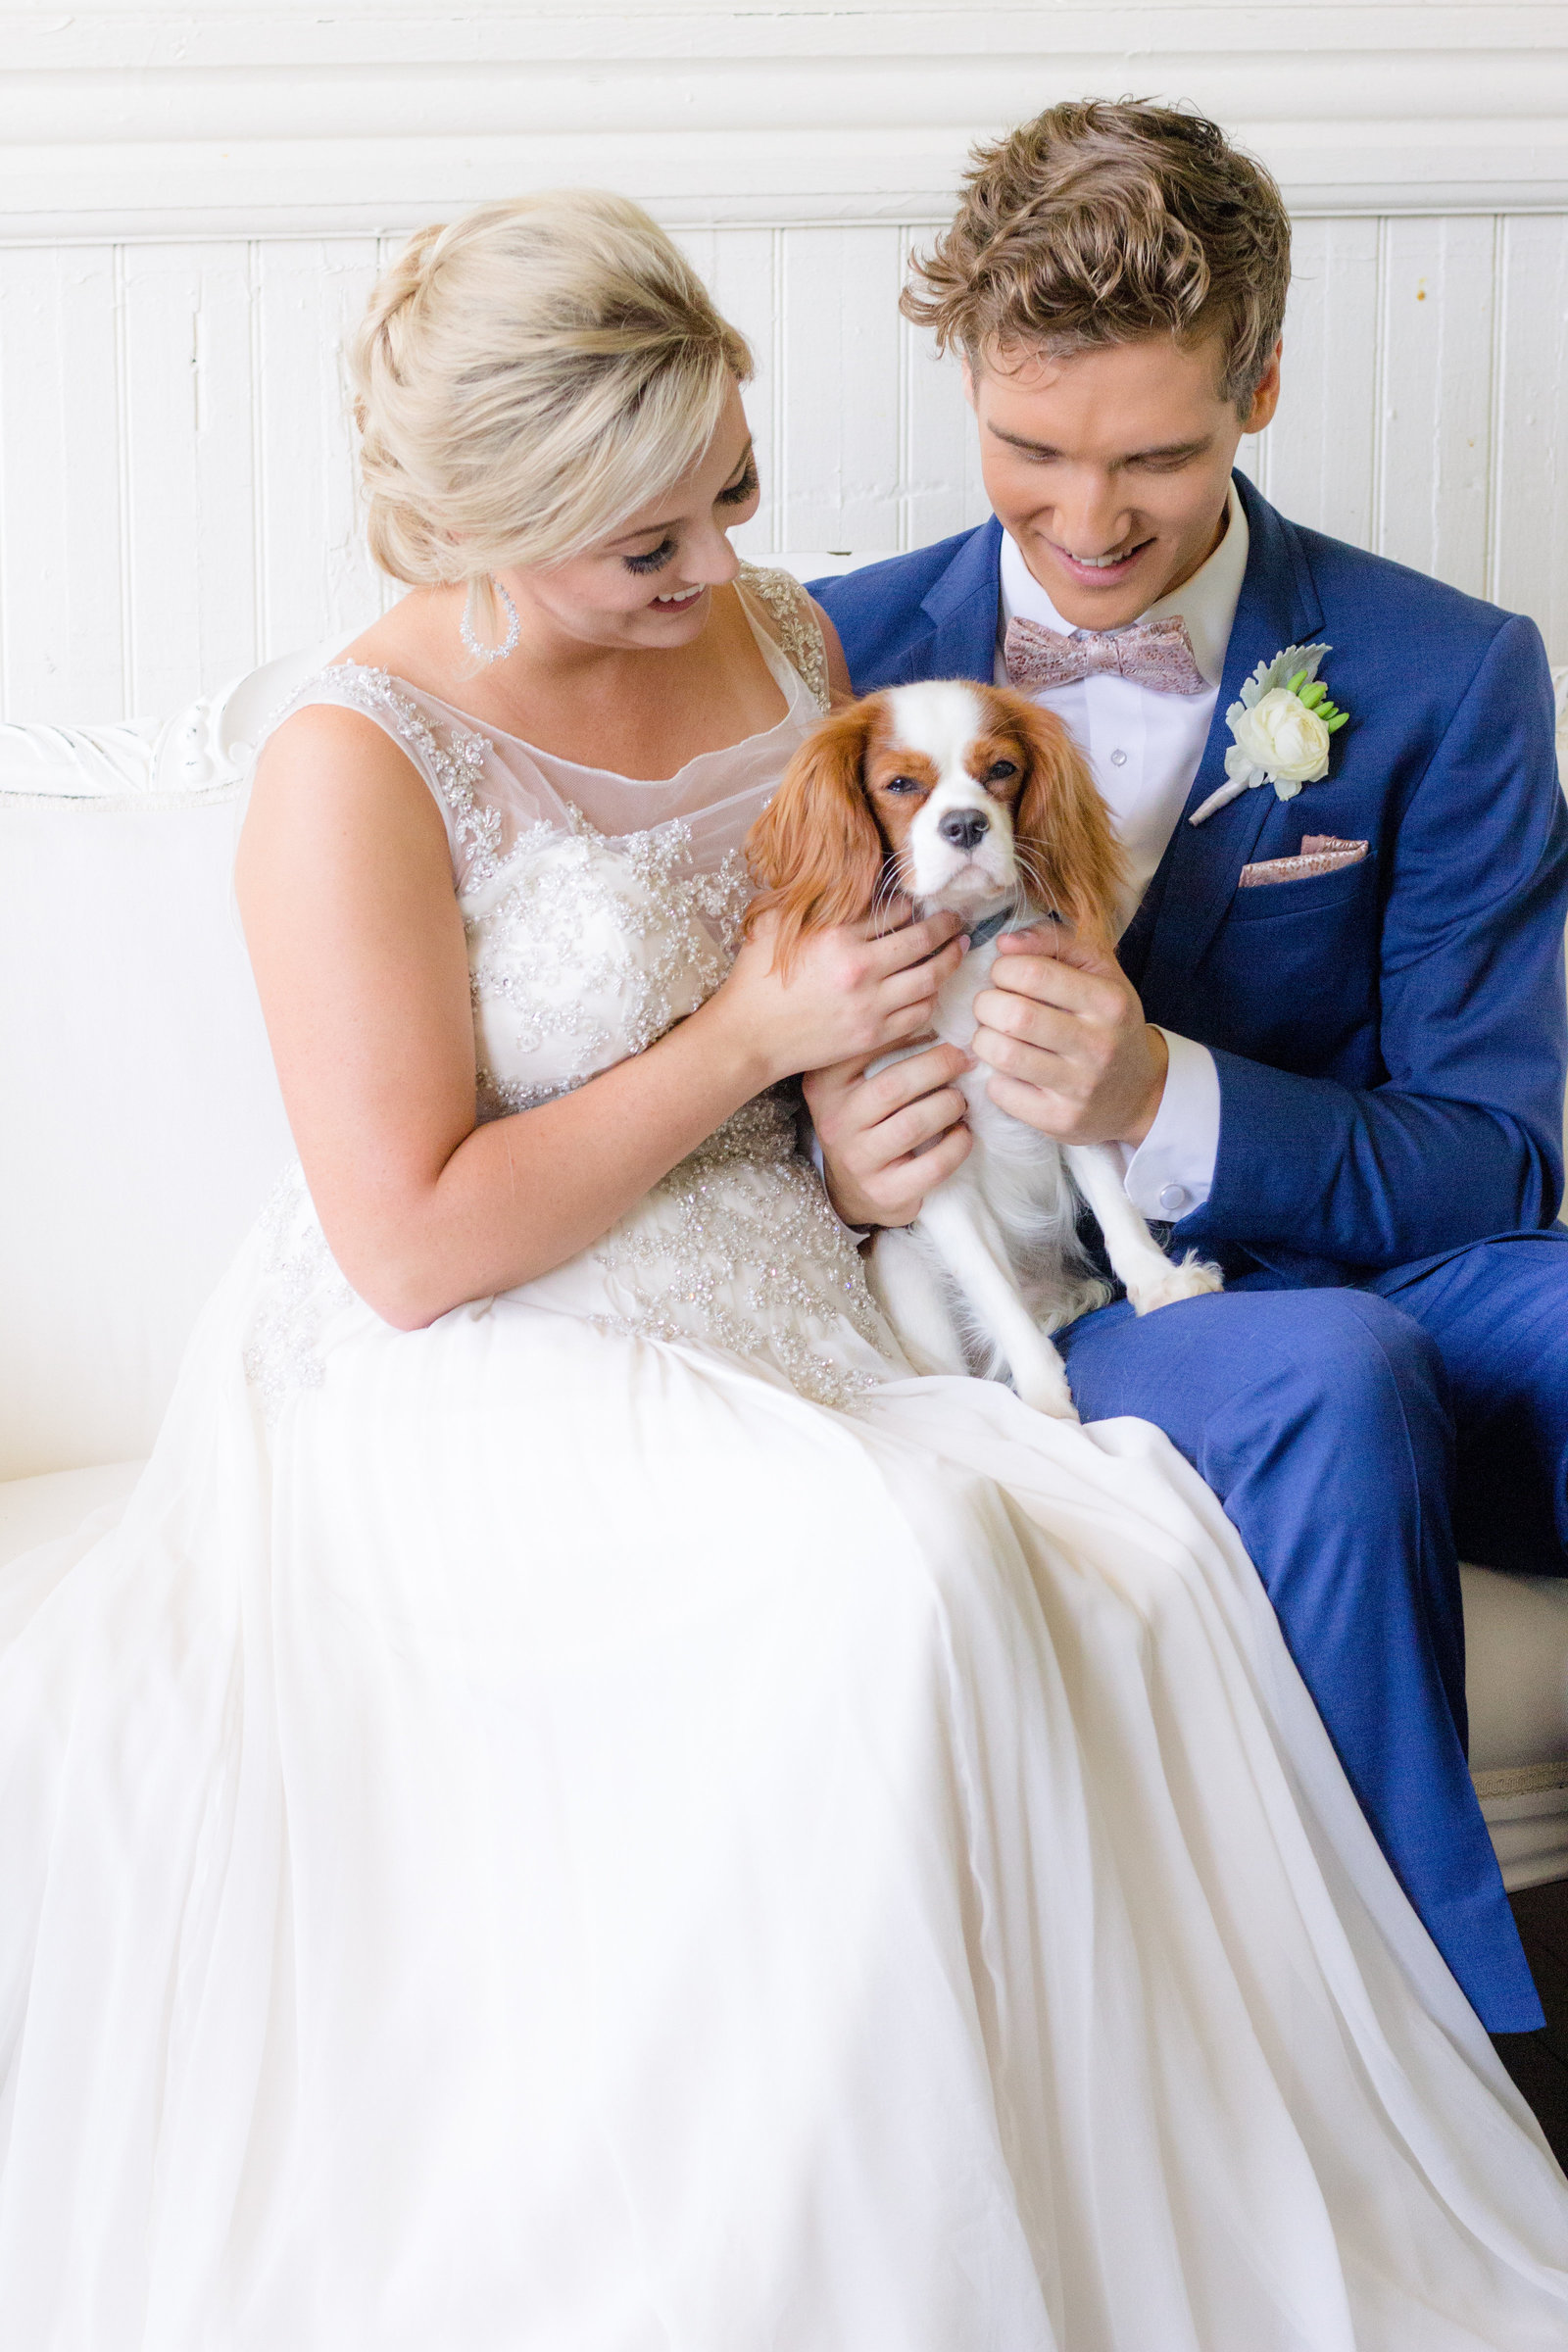 Nashville Wedding Photography | Wedding Photos with Puppies